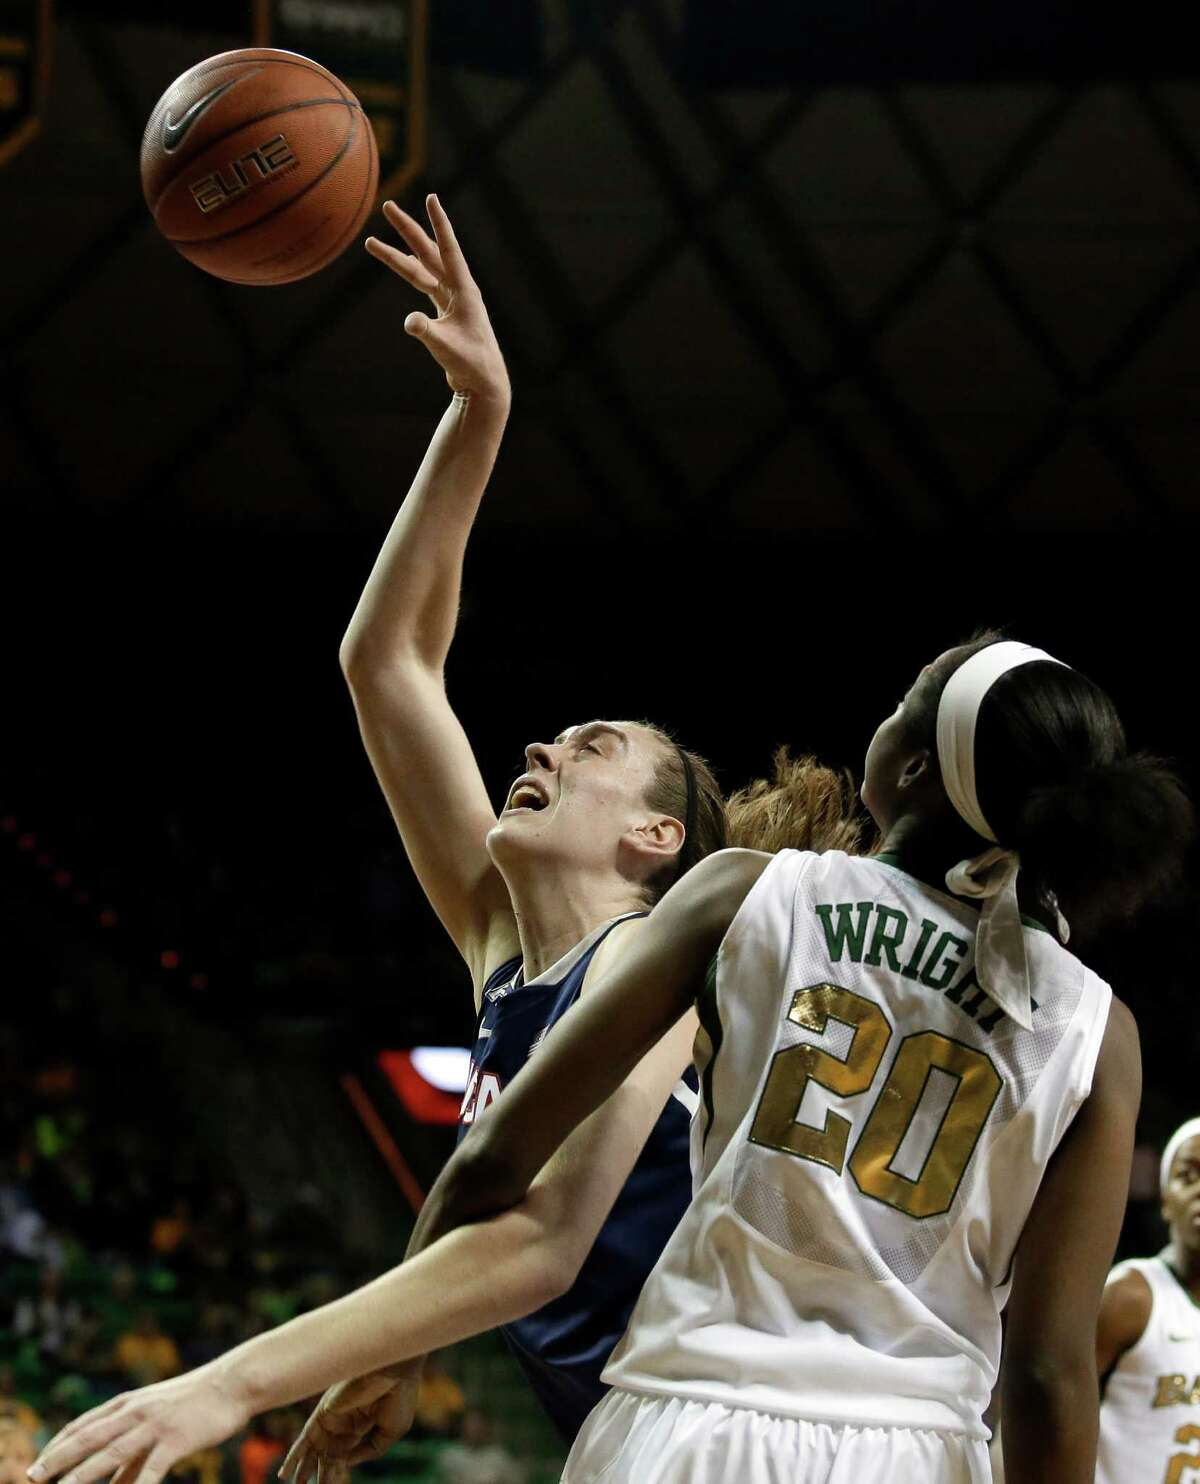 Connecticut's Breanna Stewart, left, fights her way to a shot opportunity against Baylor's Imani Wright (20) in the first half of an NCAA college basketball game, Monday, Jan. 13, 2014, in Waco, Texas.